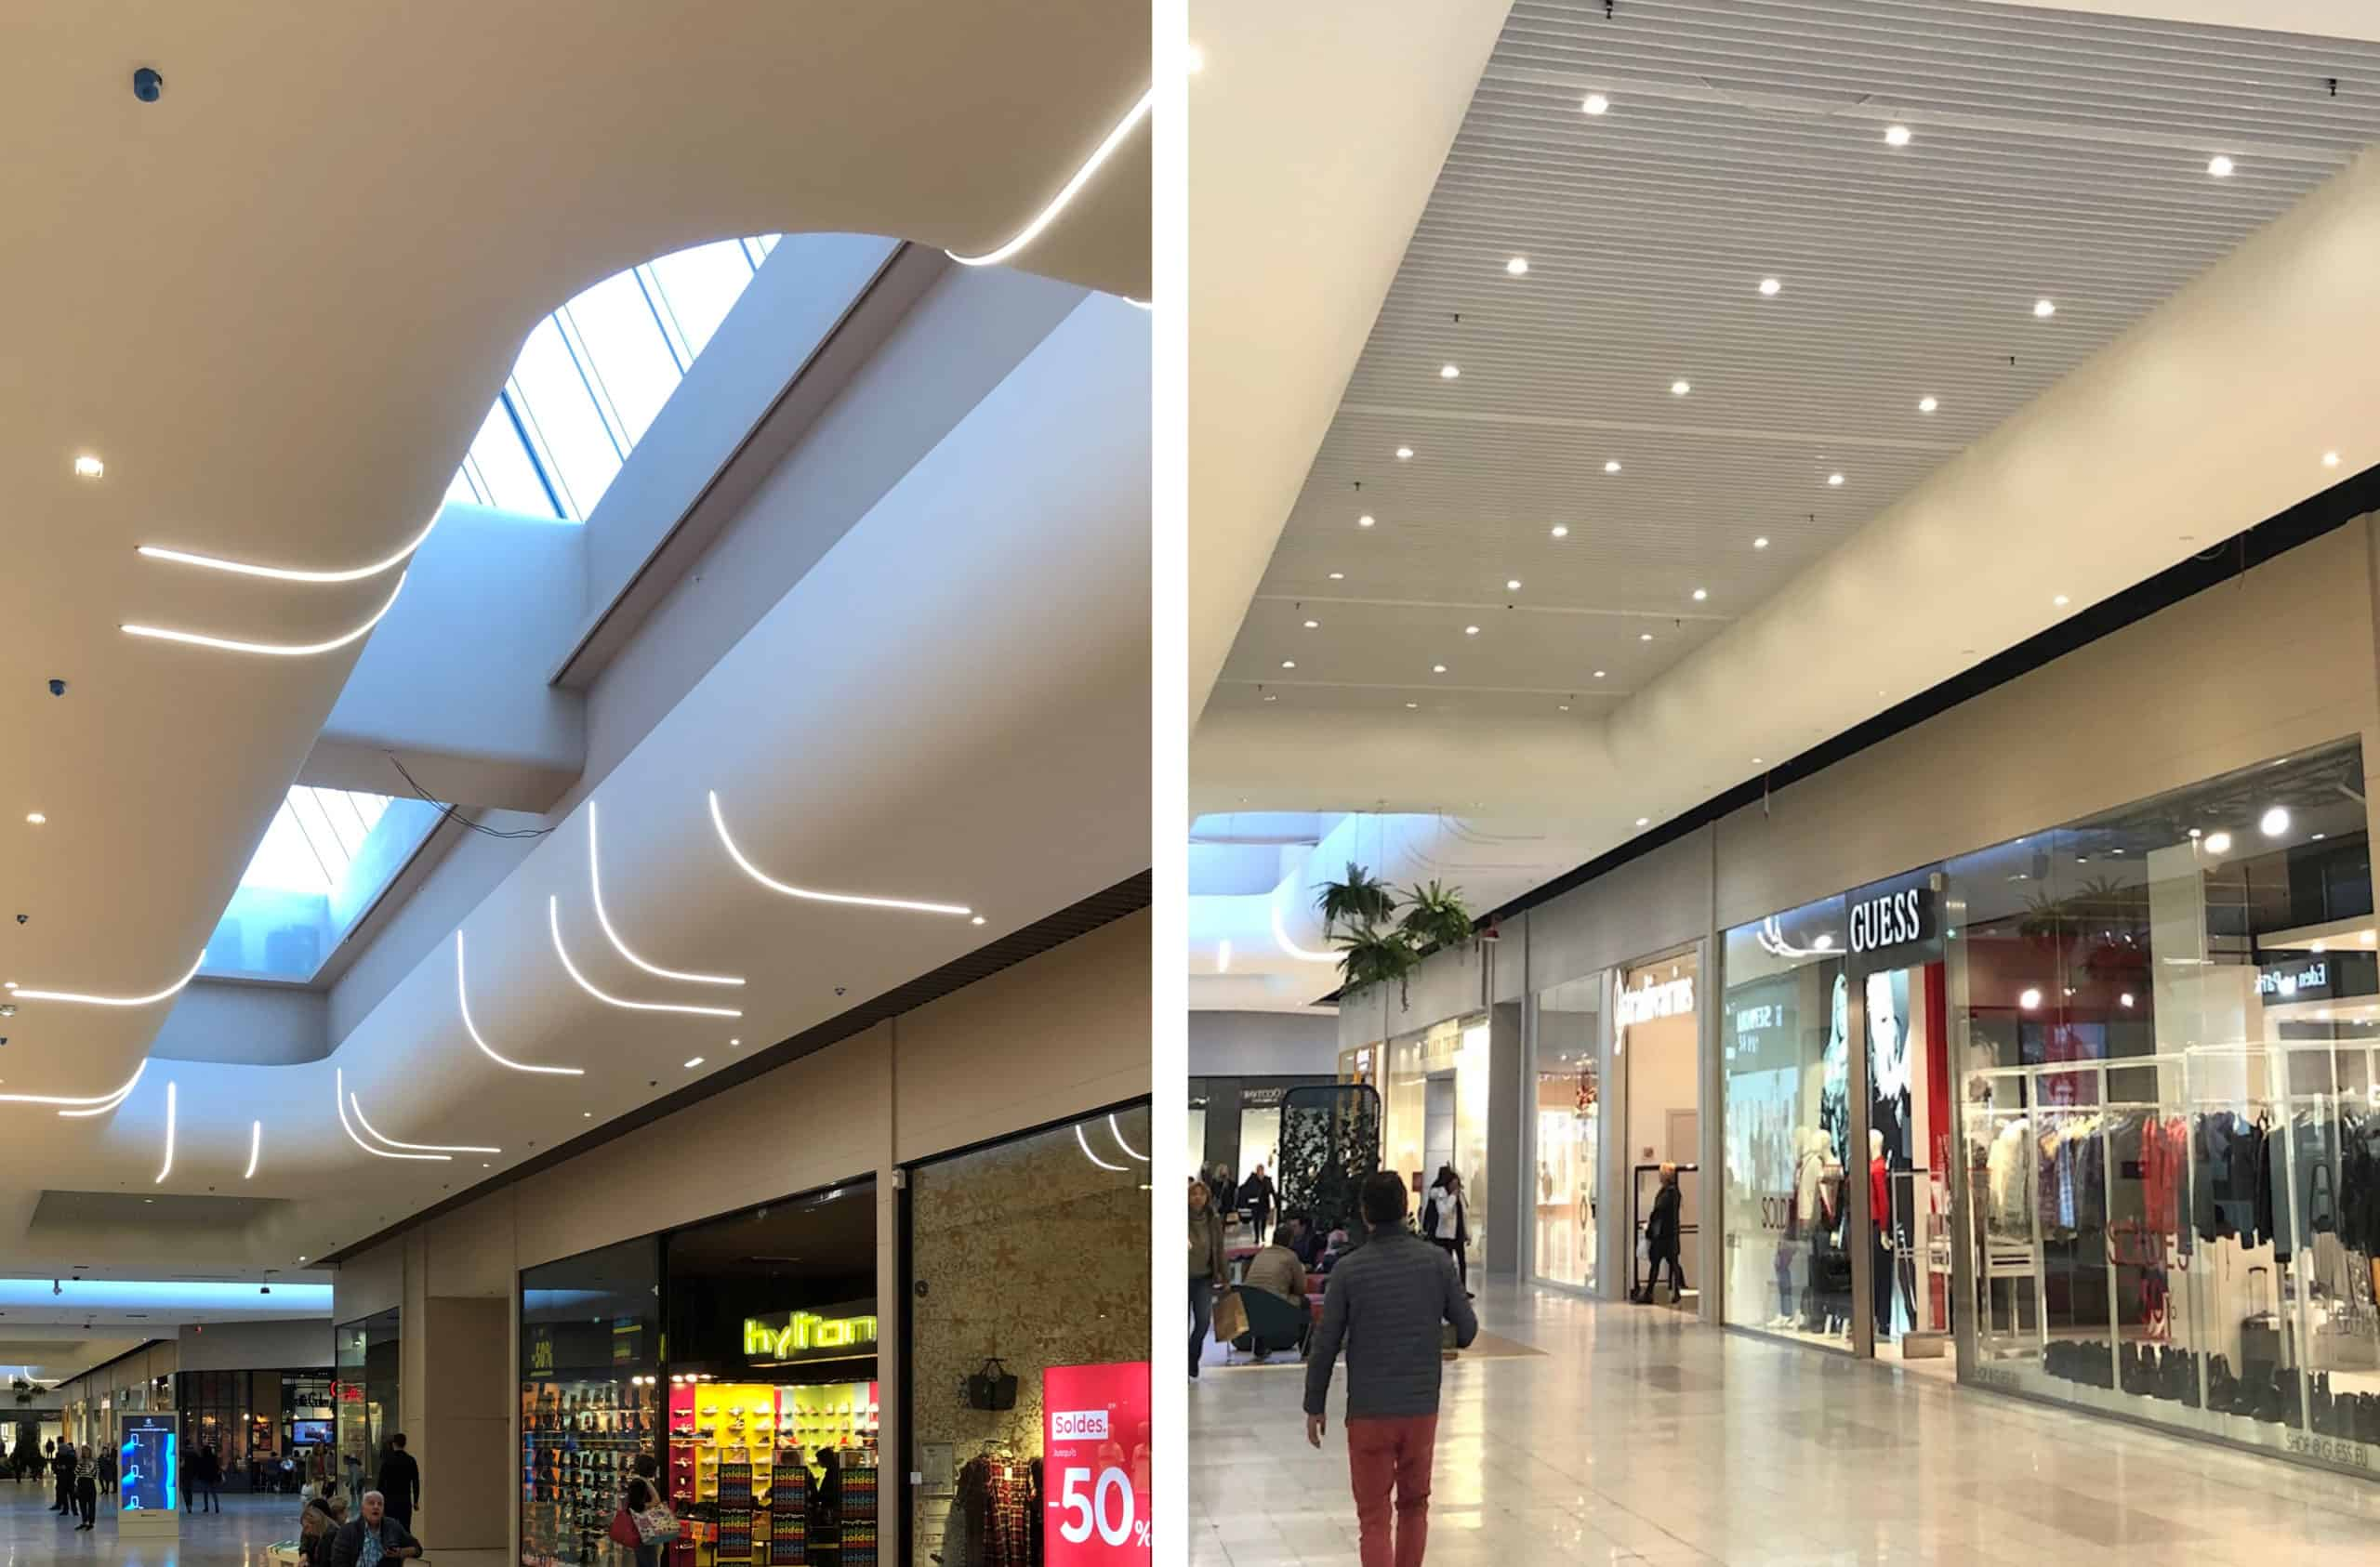 News: Project Galerie du Centre Commercial de Blagnac, France